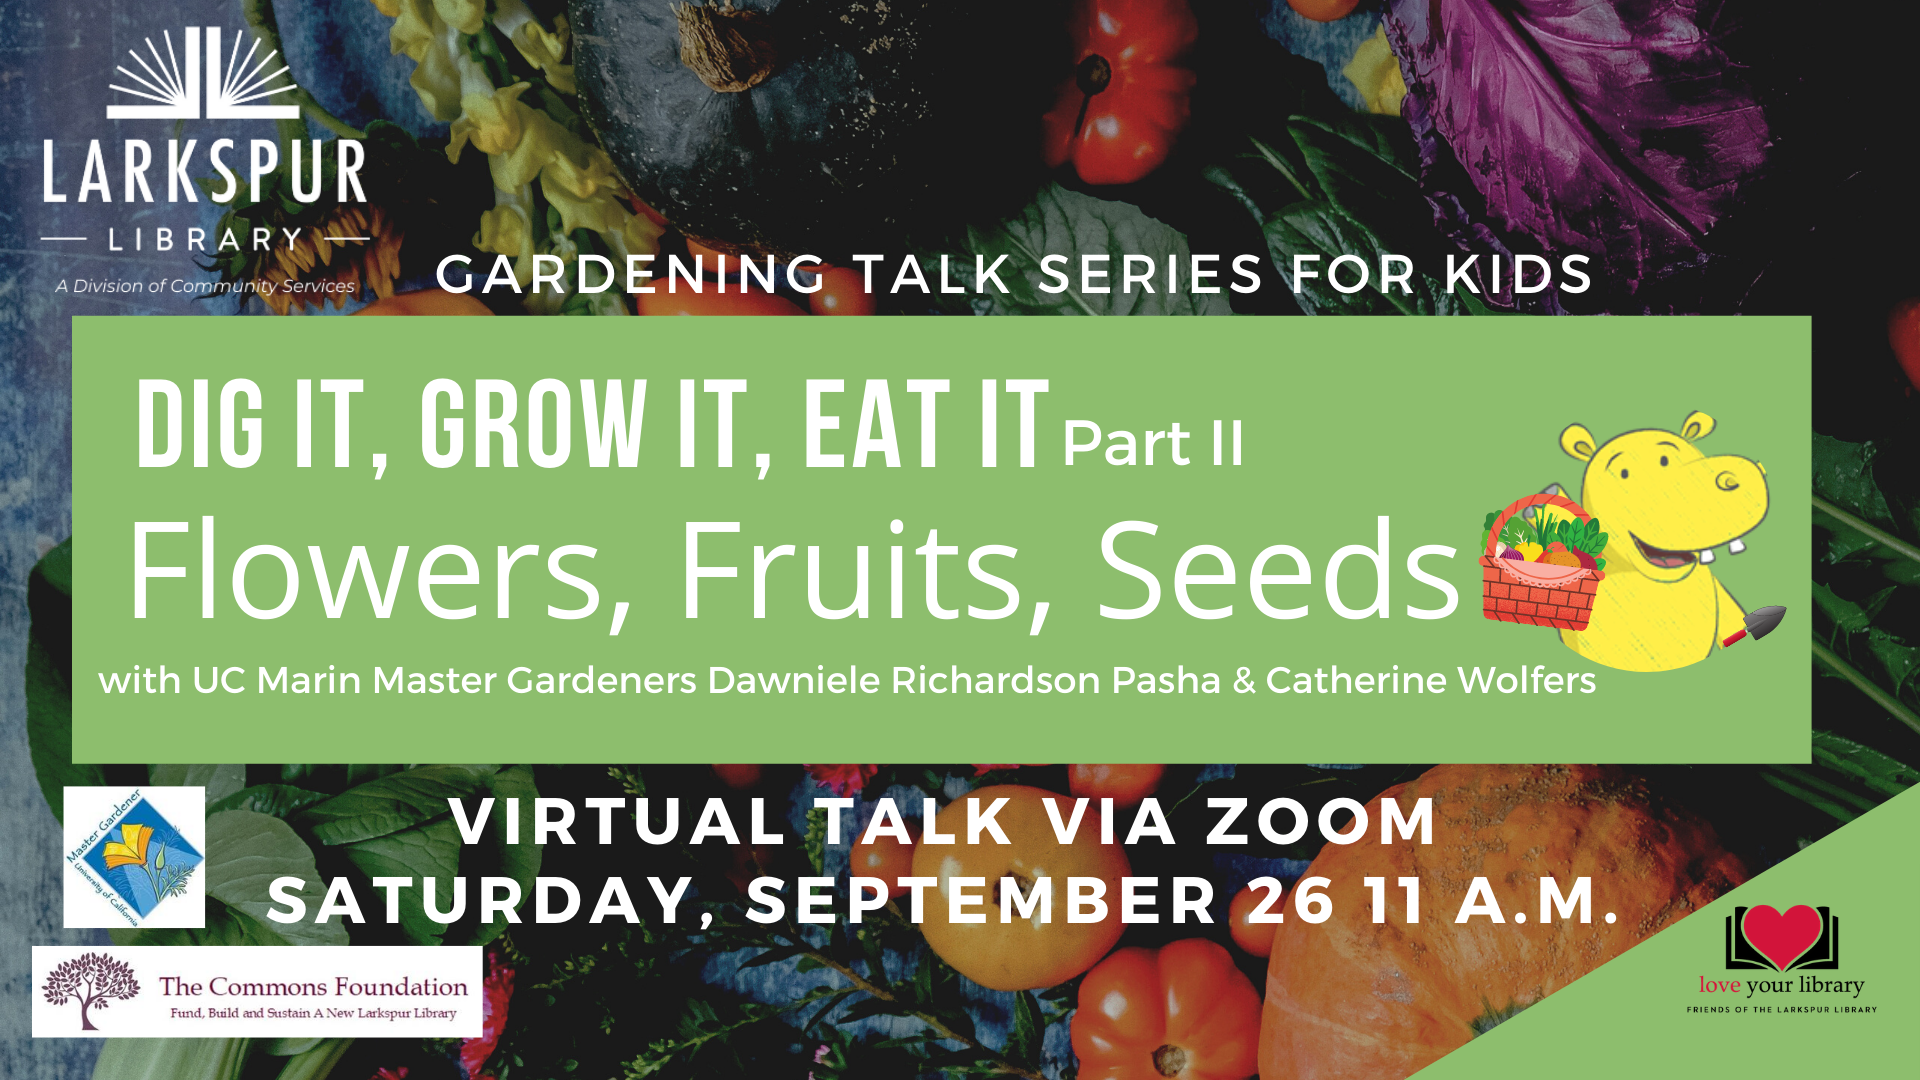 Dig It, Grow It, Eat It  Part 2, Saturday September 26 at 11 AM